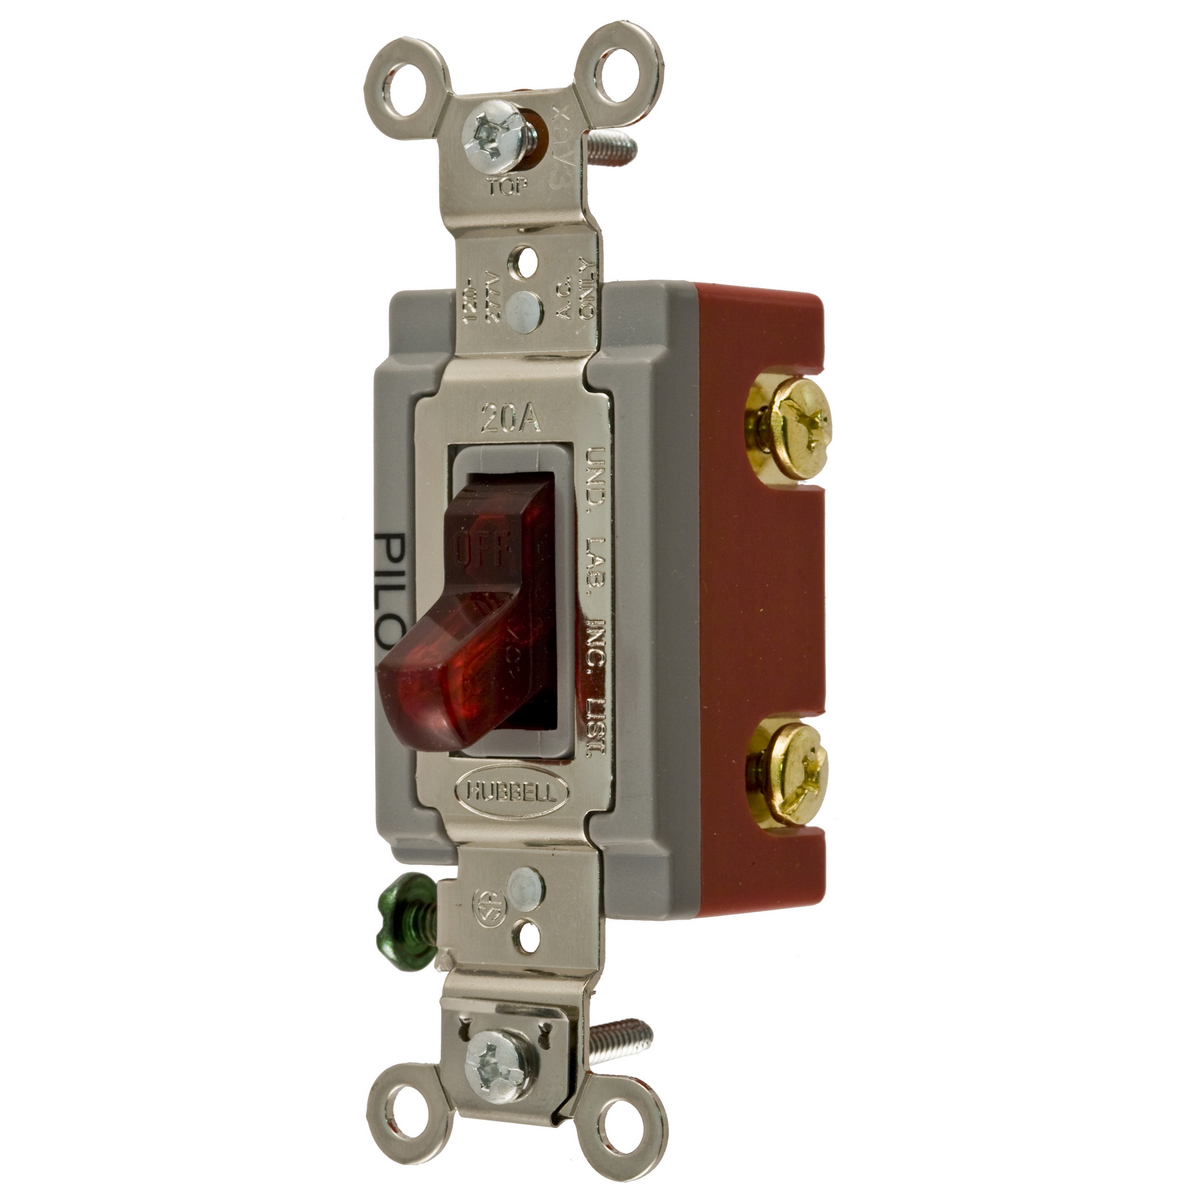 Hbl1221pl Industrial Series Switches Electrical